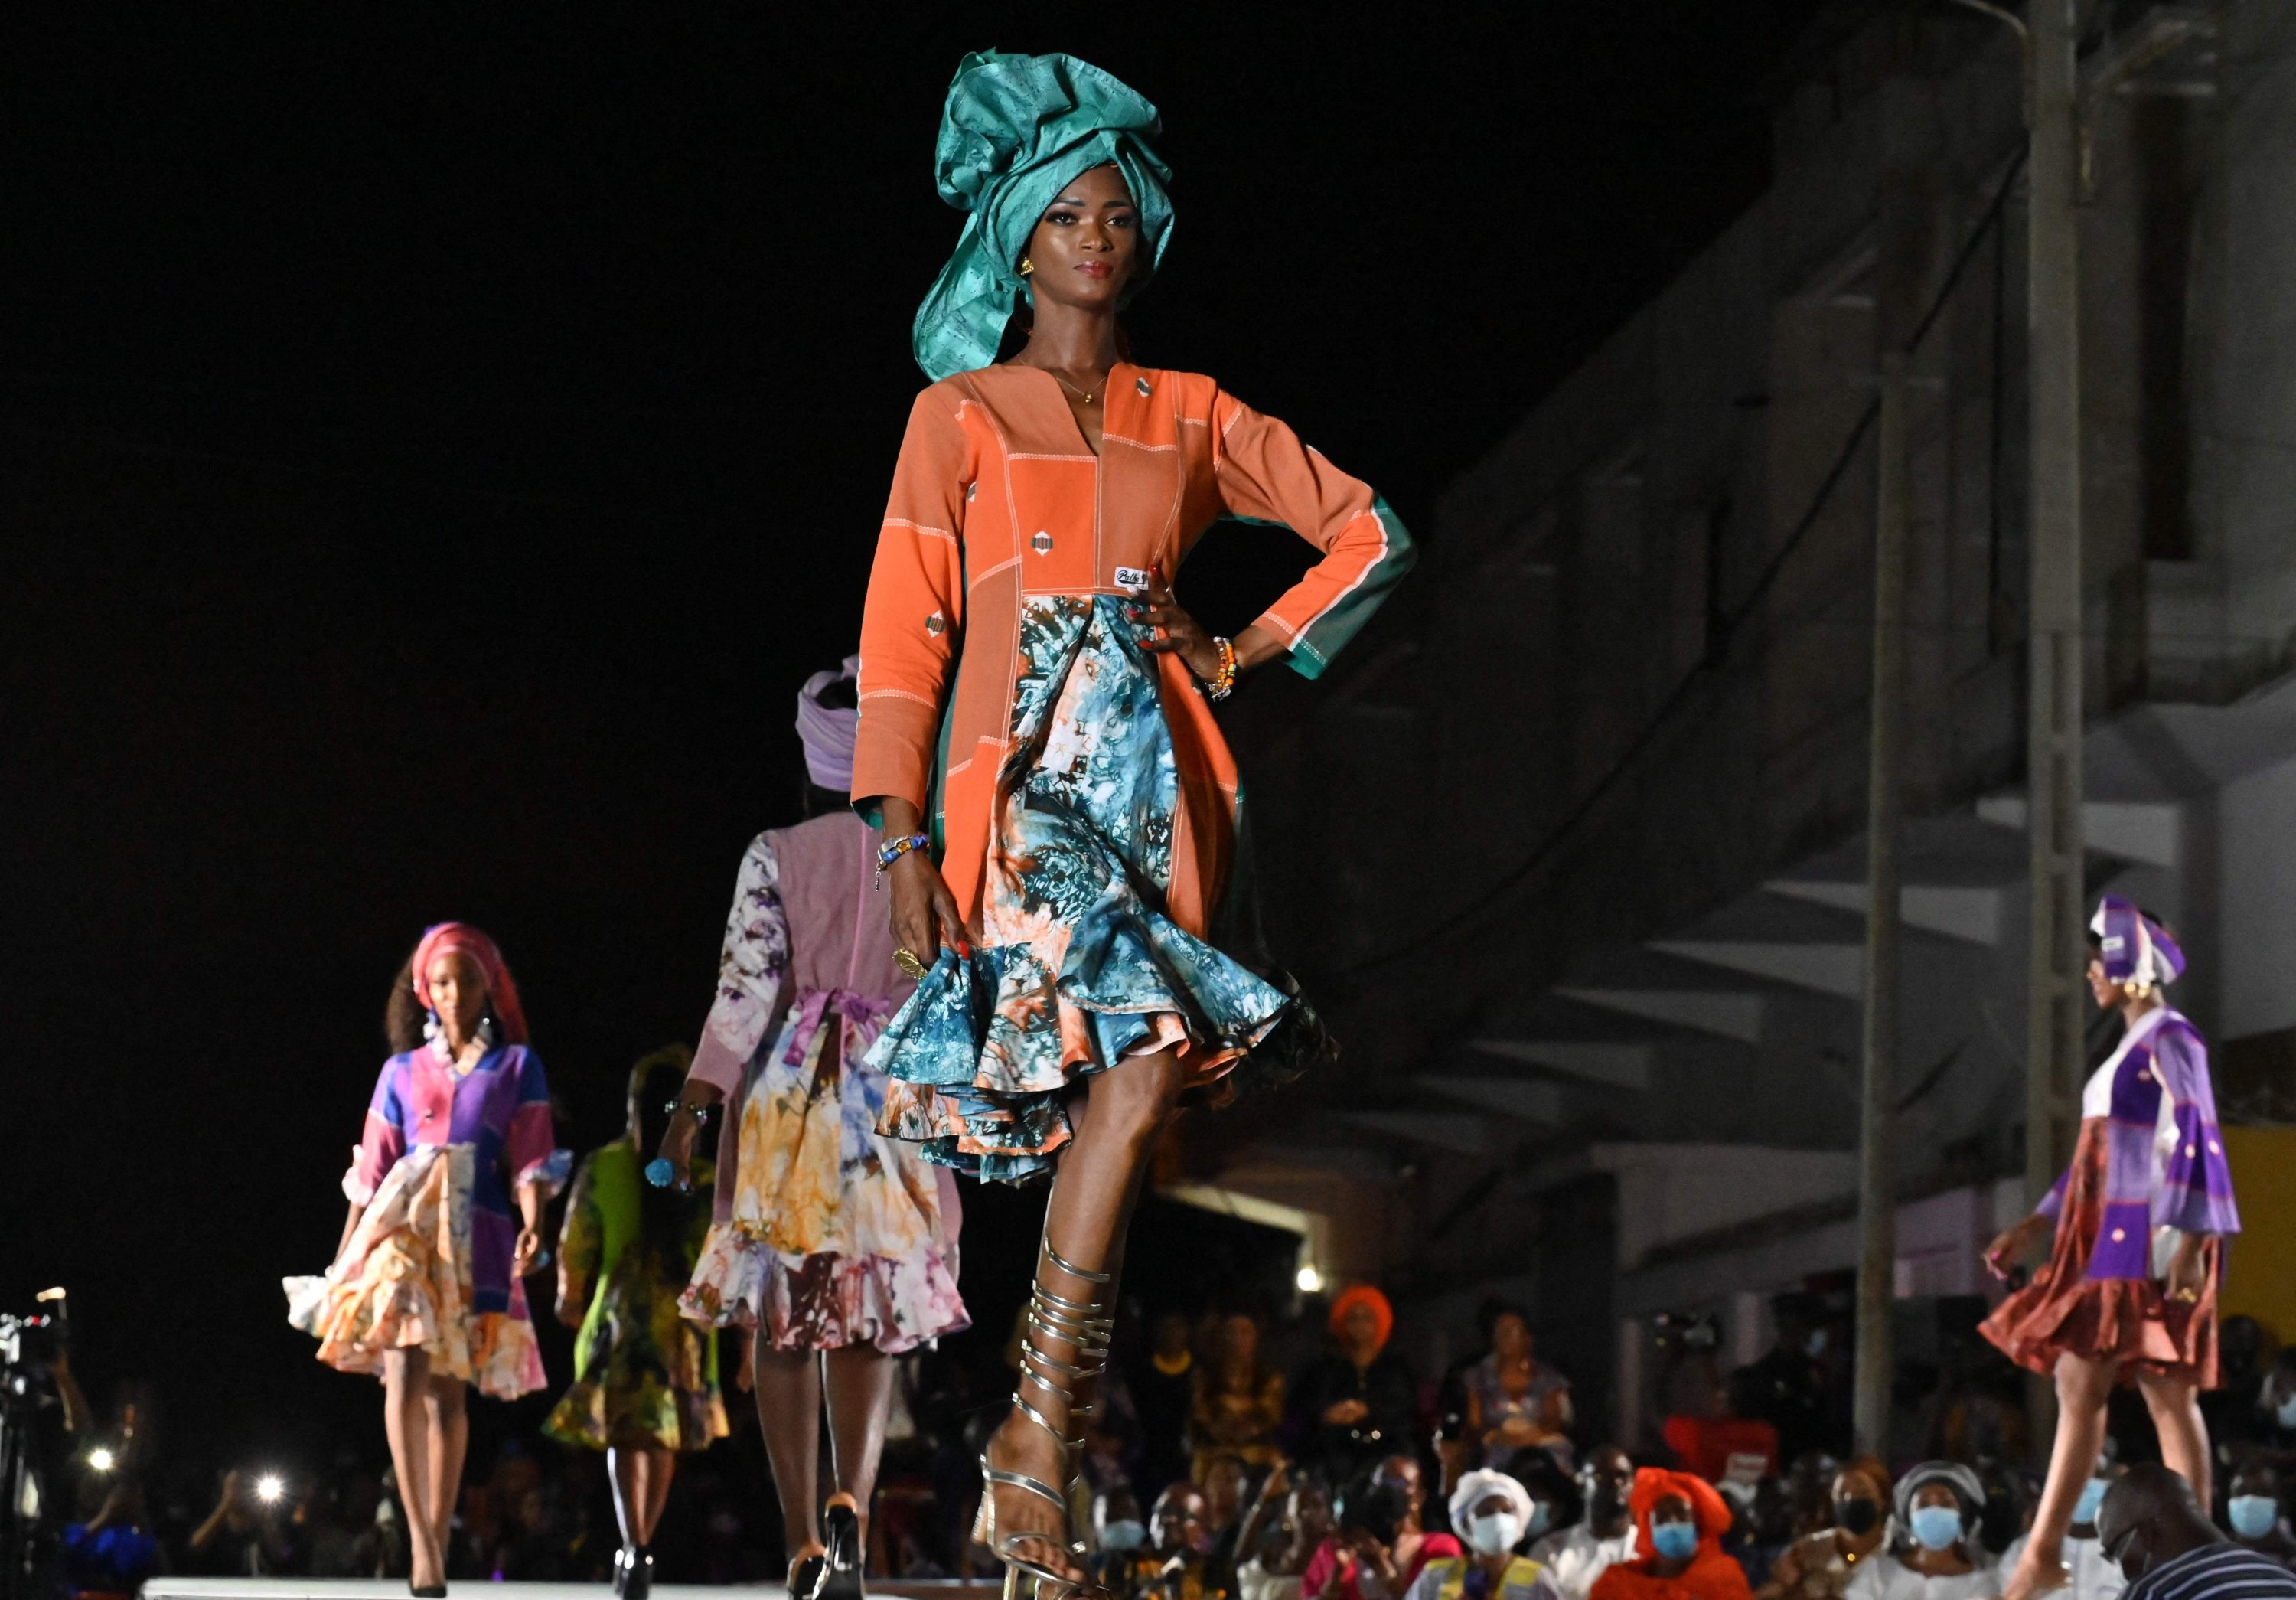 Models present the creations of Pathé'O during a fashion show to celebrate 50 years of 'Maison Pathe'O' in Abidjan, Ivory Coast, May 29, 2021. (AFP Photo)